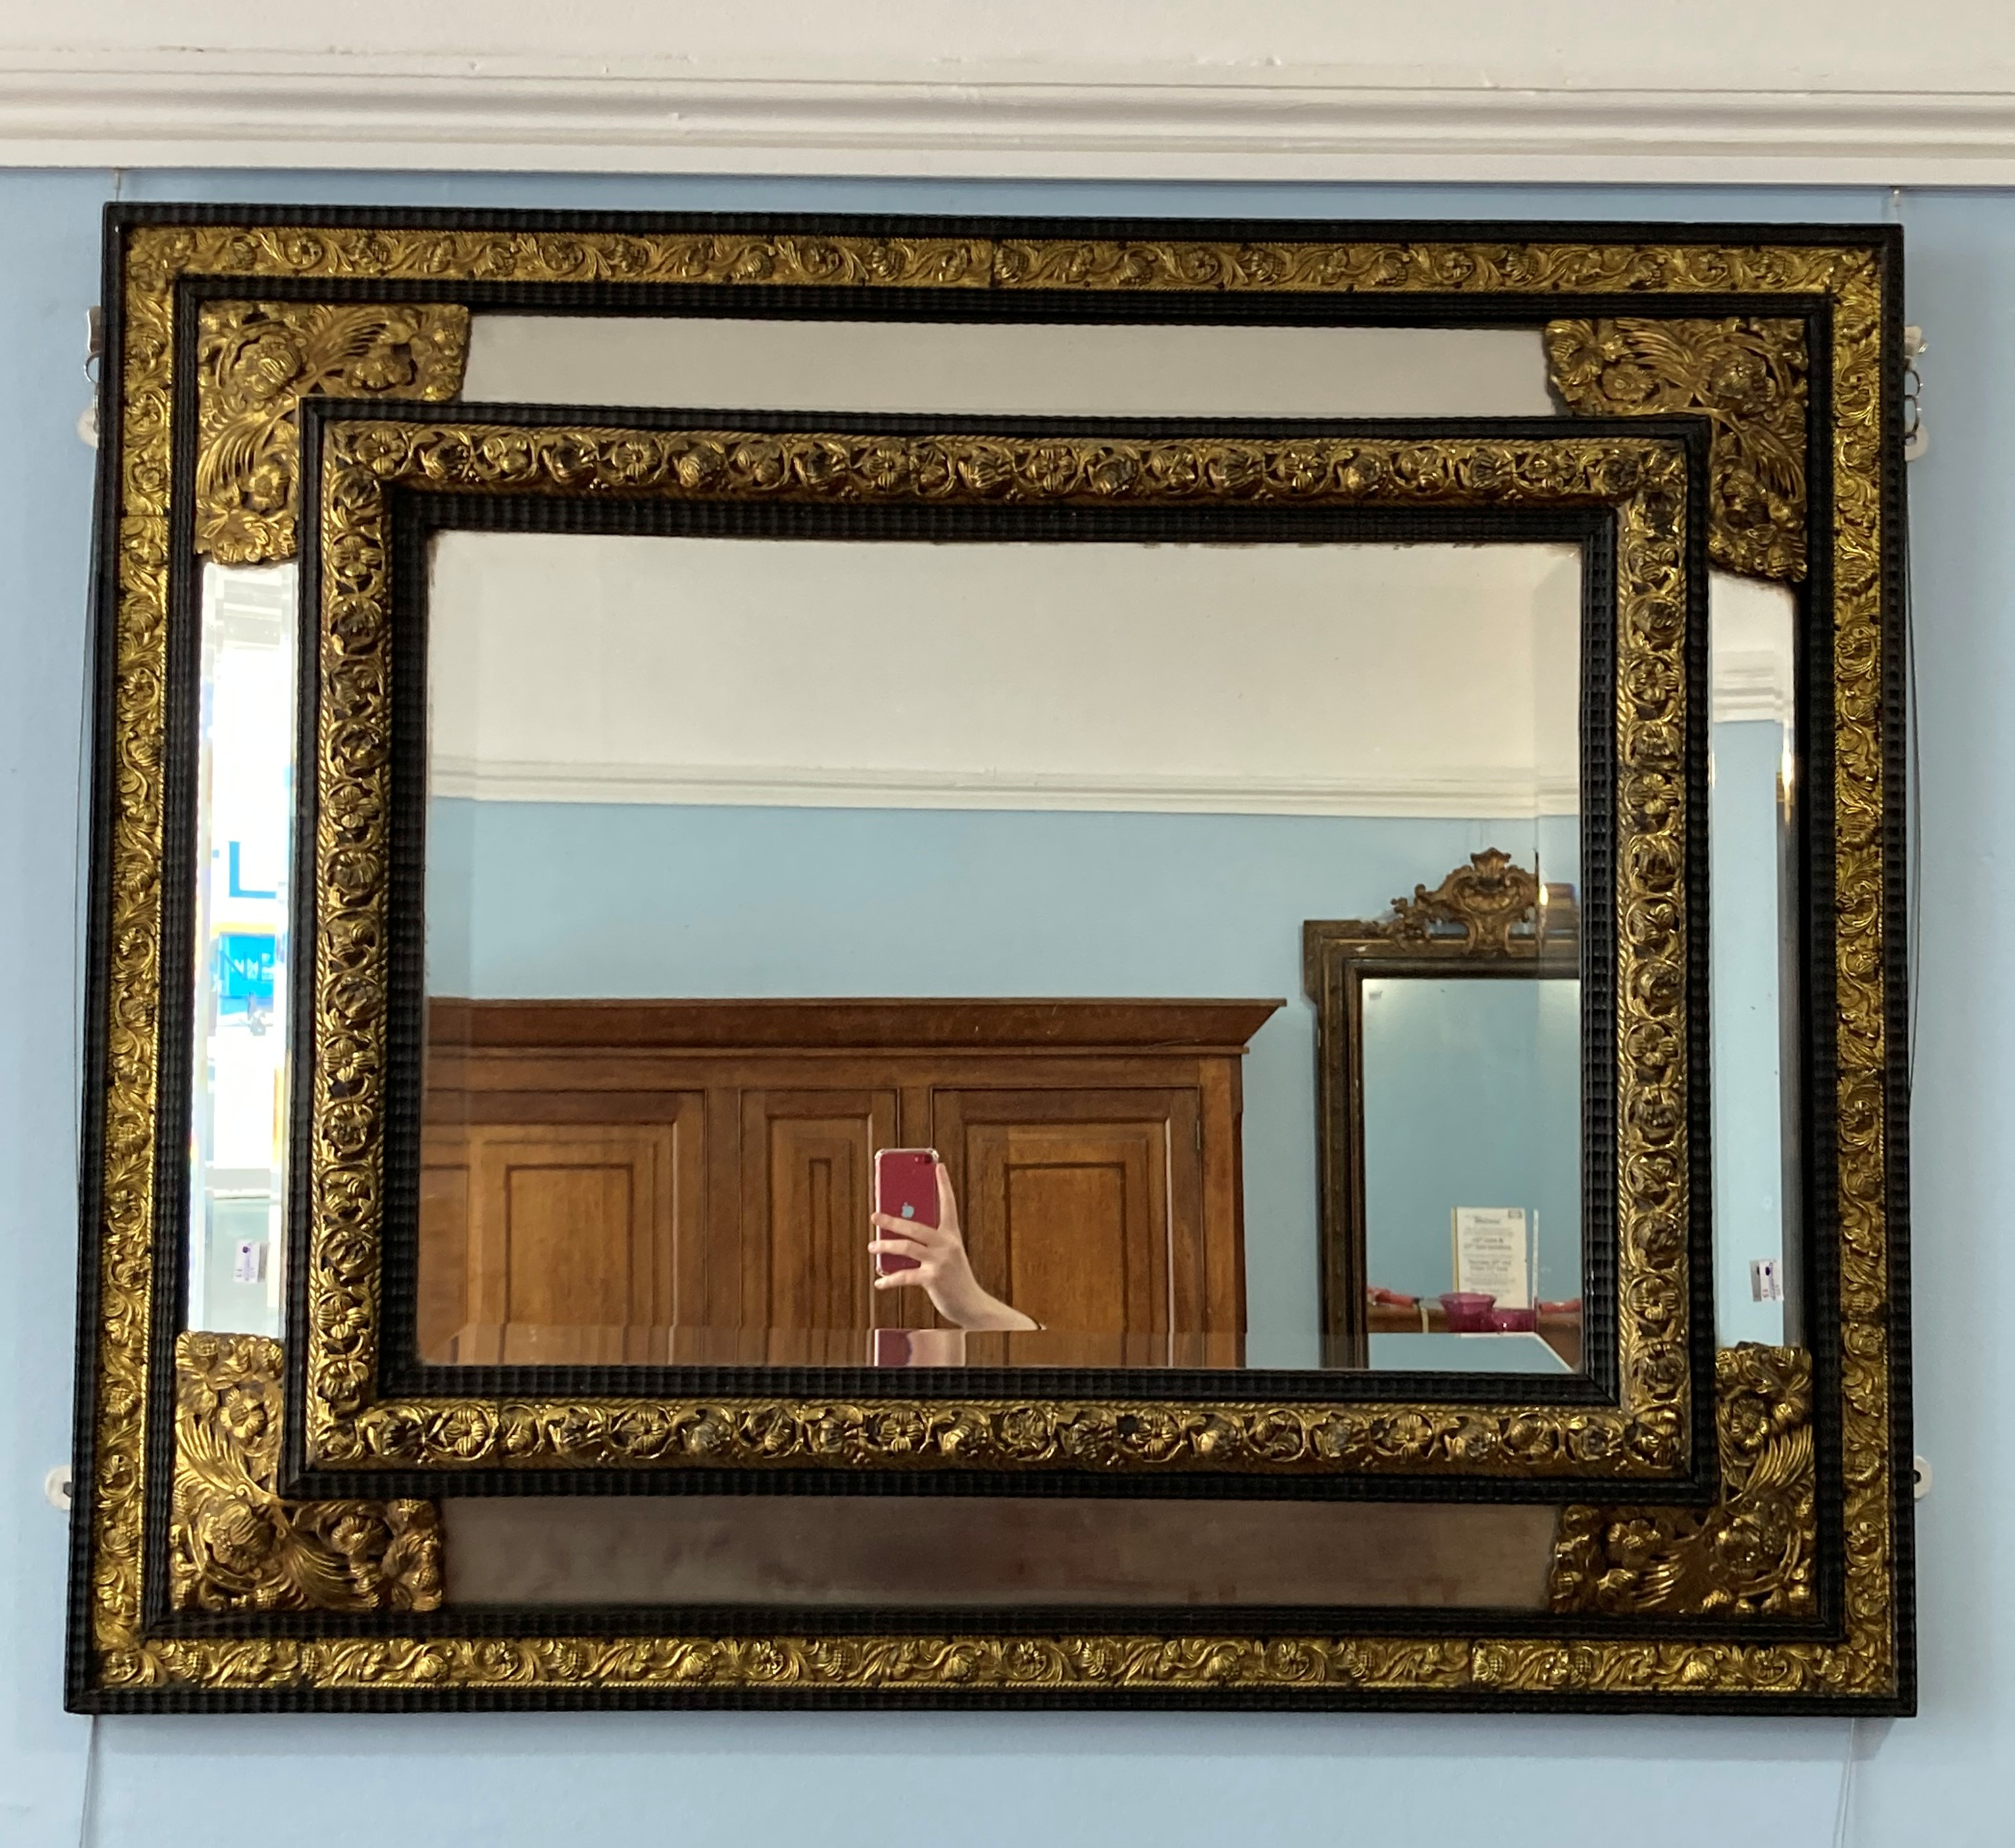 An early 20thC ornate rectangular five-plate bevelled edged Wall Mirror, the frame formed of - Image 2 of 4